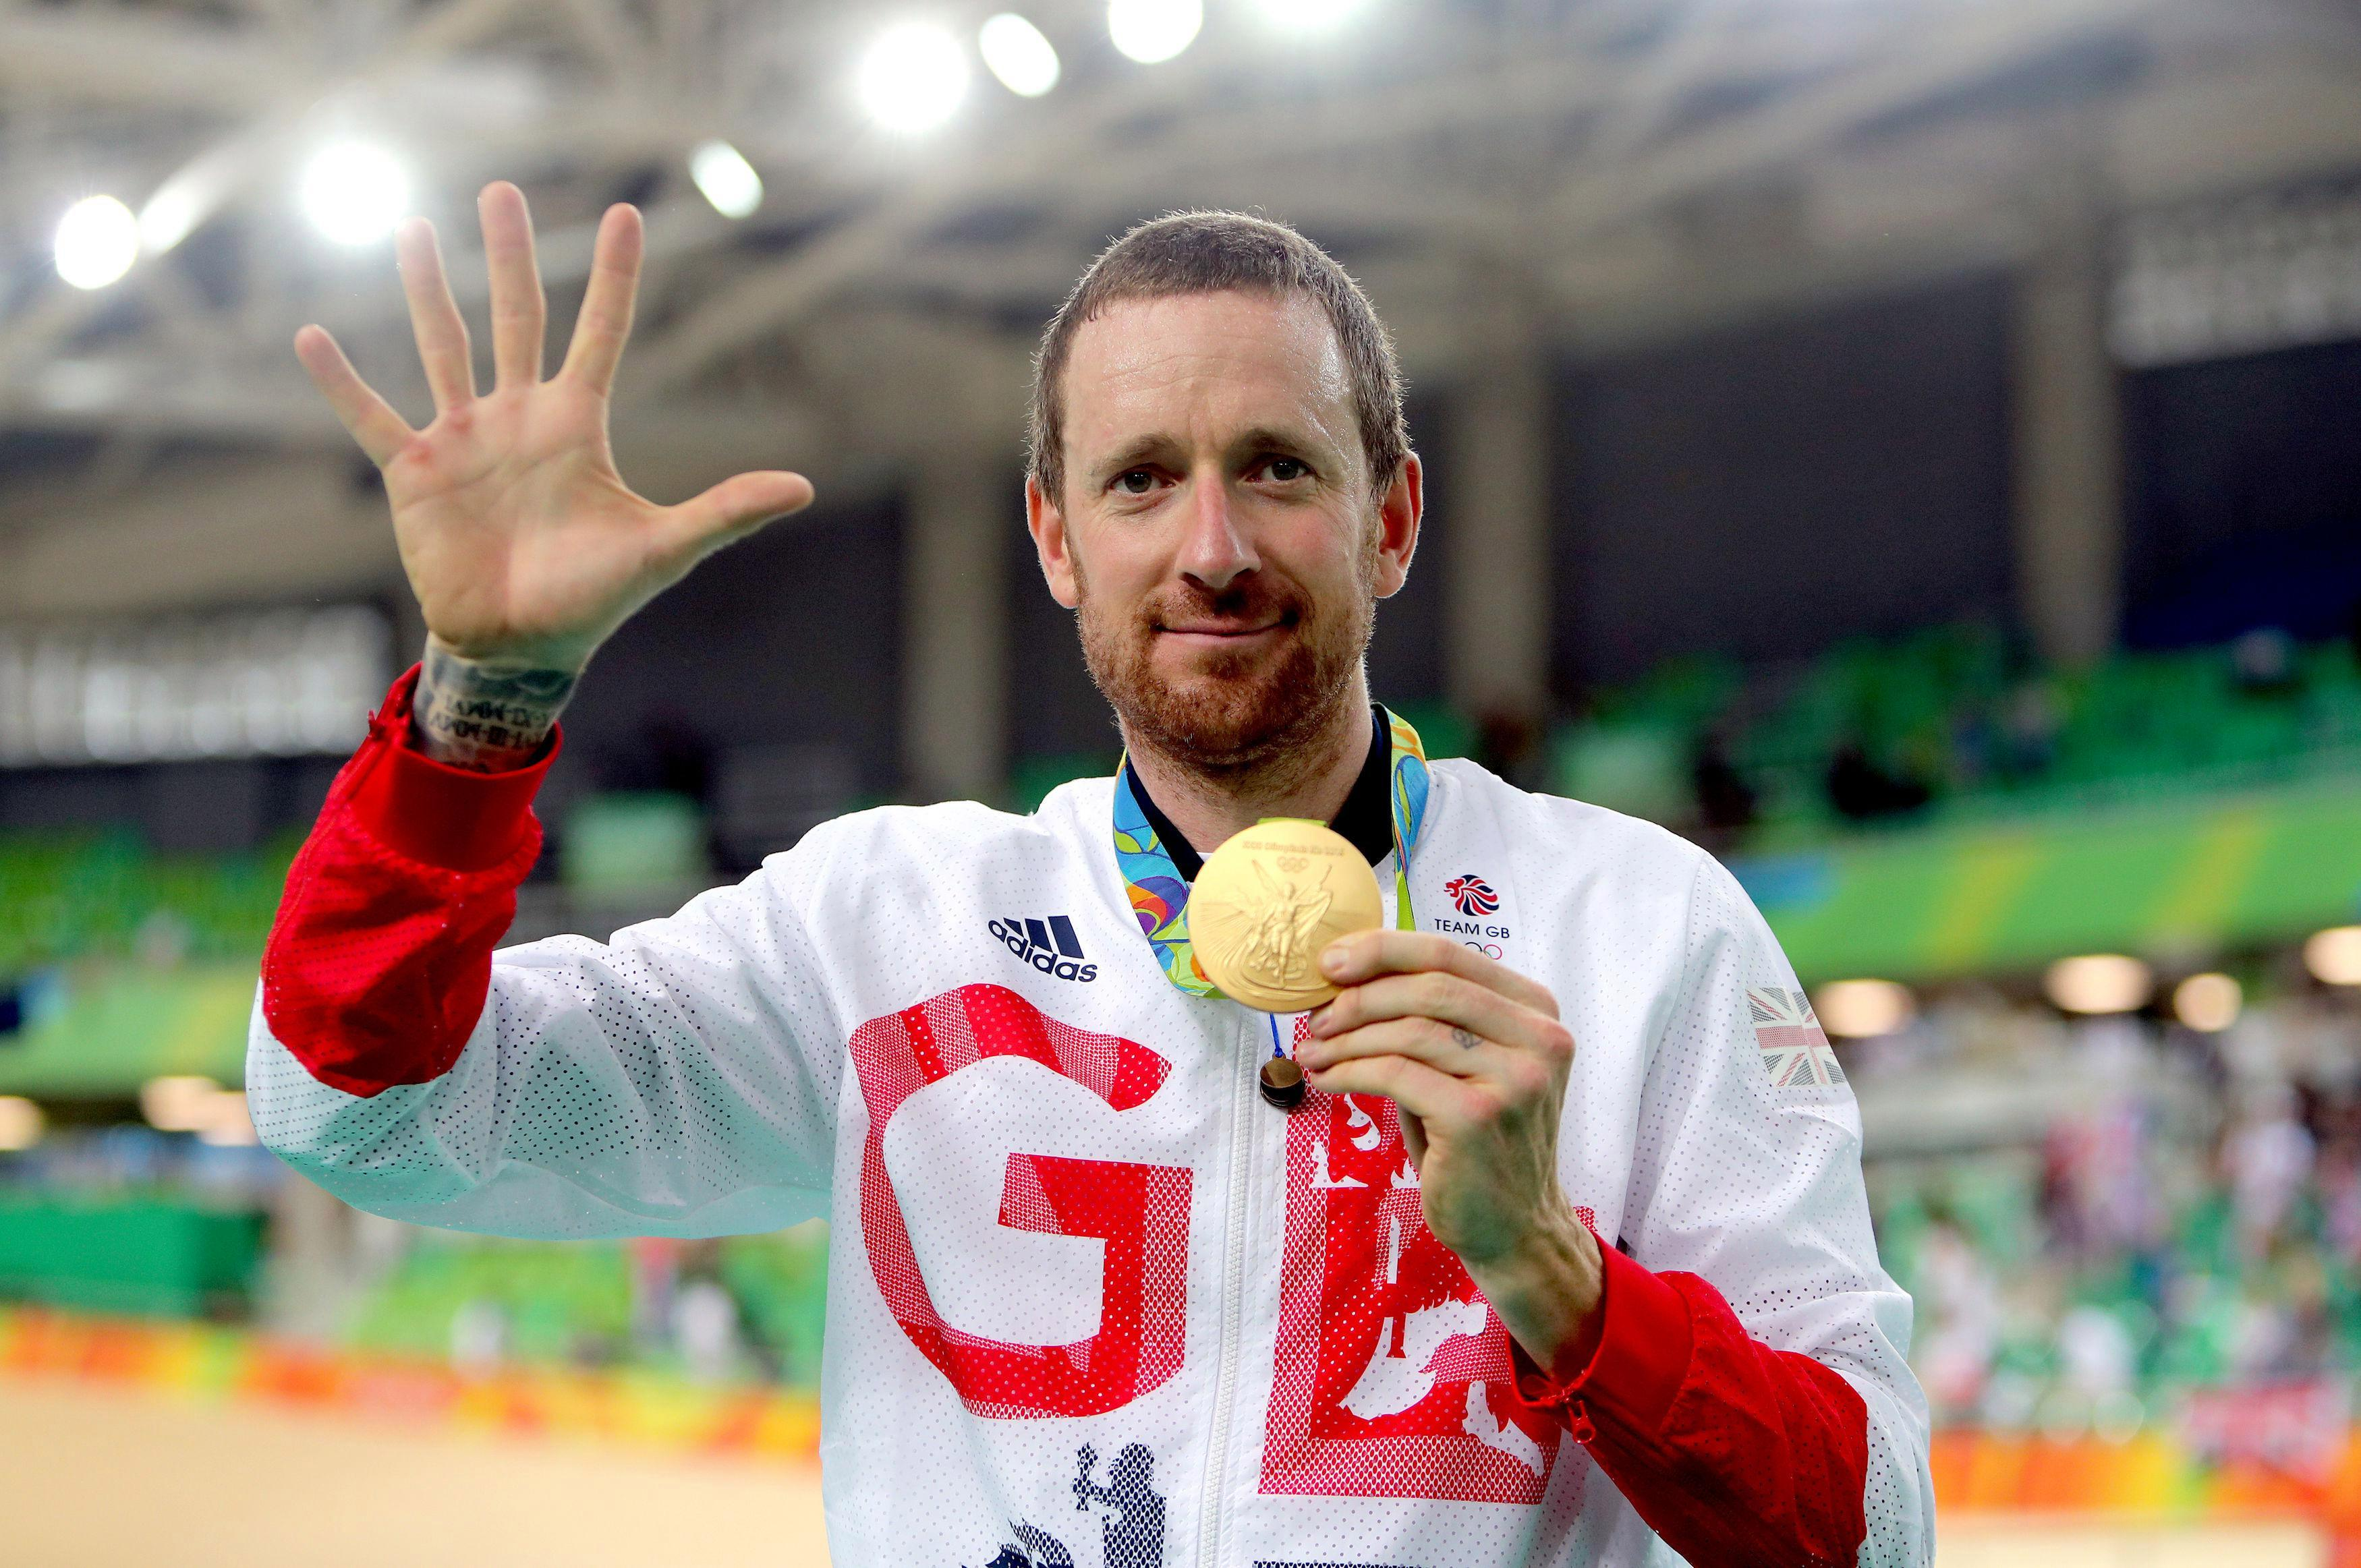 Supplying performance-enhancing drugs should be made illegal in Britain after Sir Bradley Wiggins doping revelations, MP demands